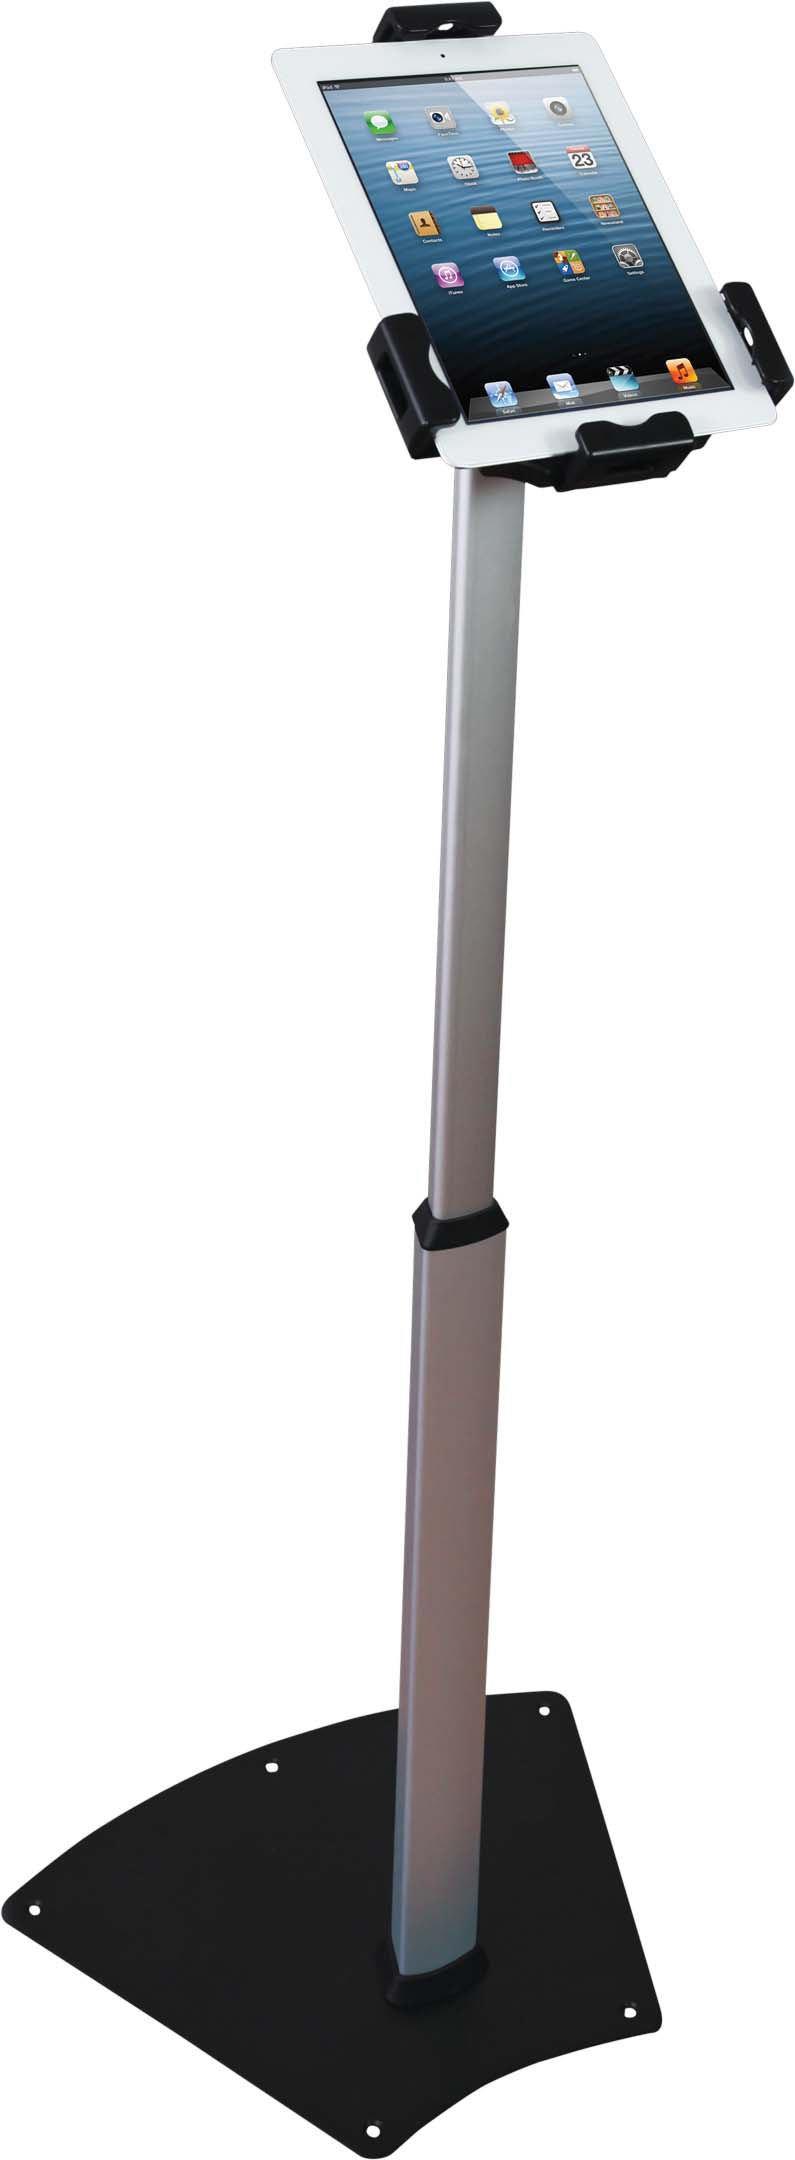 steel stand holding an iPad tablet